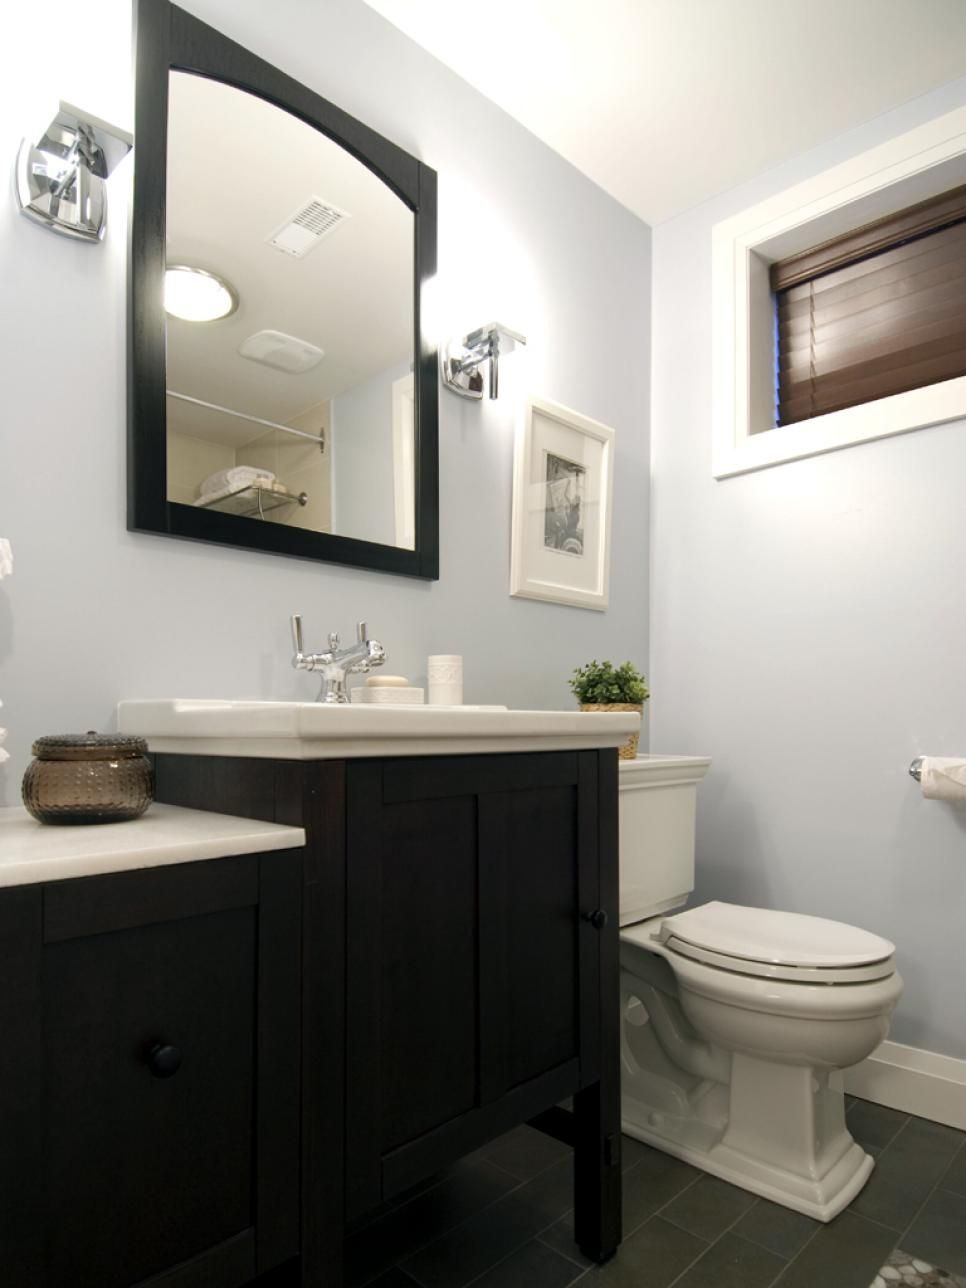 Rooms Viewer Budget Bathroom Remodel Small Bathroom Makeover Small Bathroom